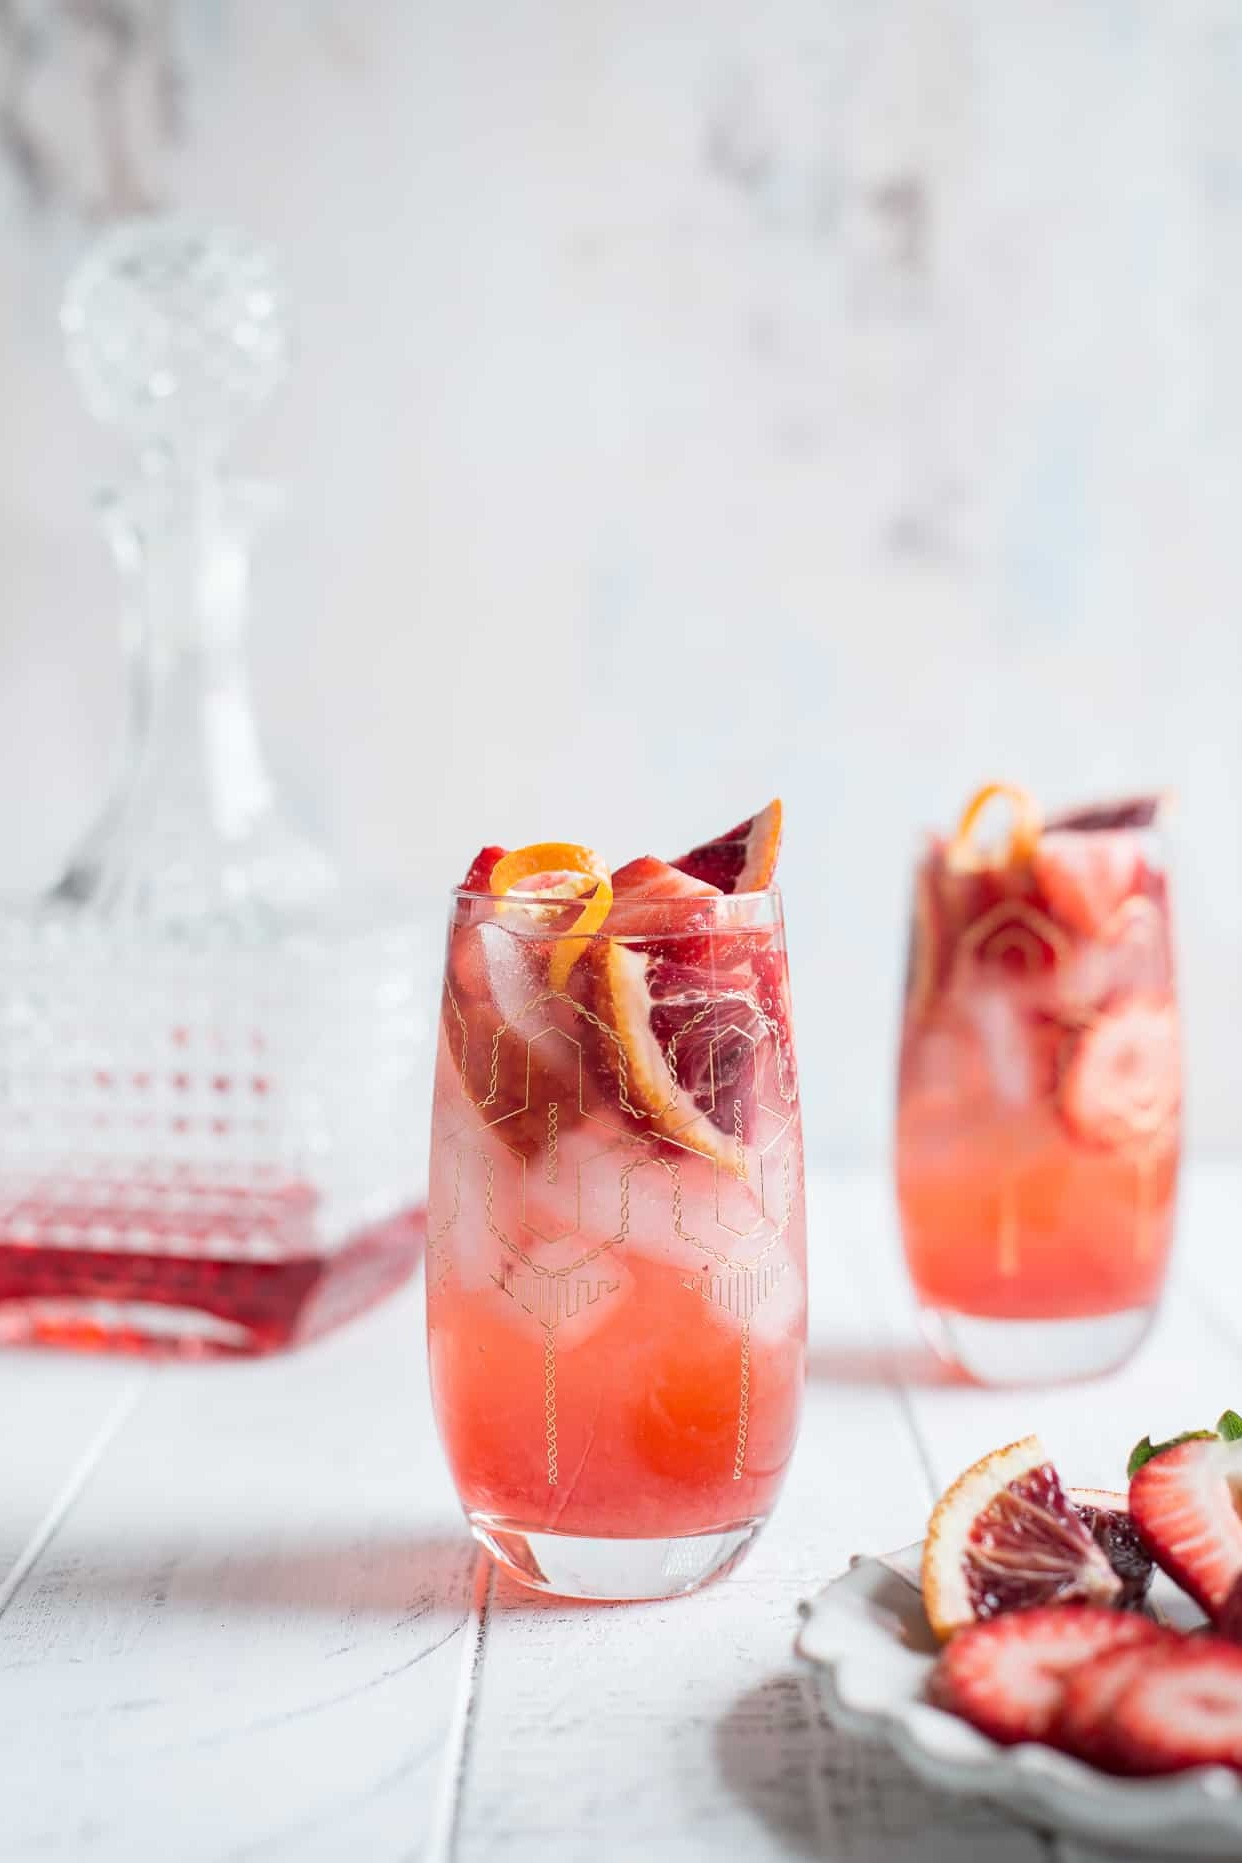 Strawberry Campari Gin Spritz from One Sweet Mess